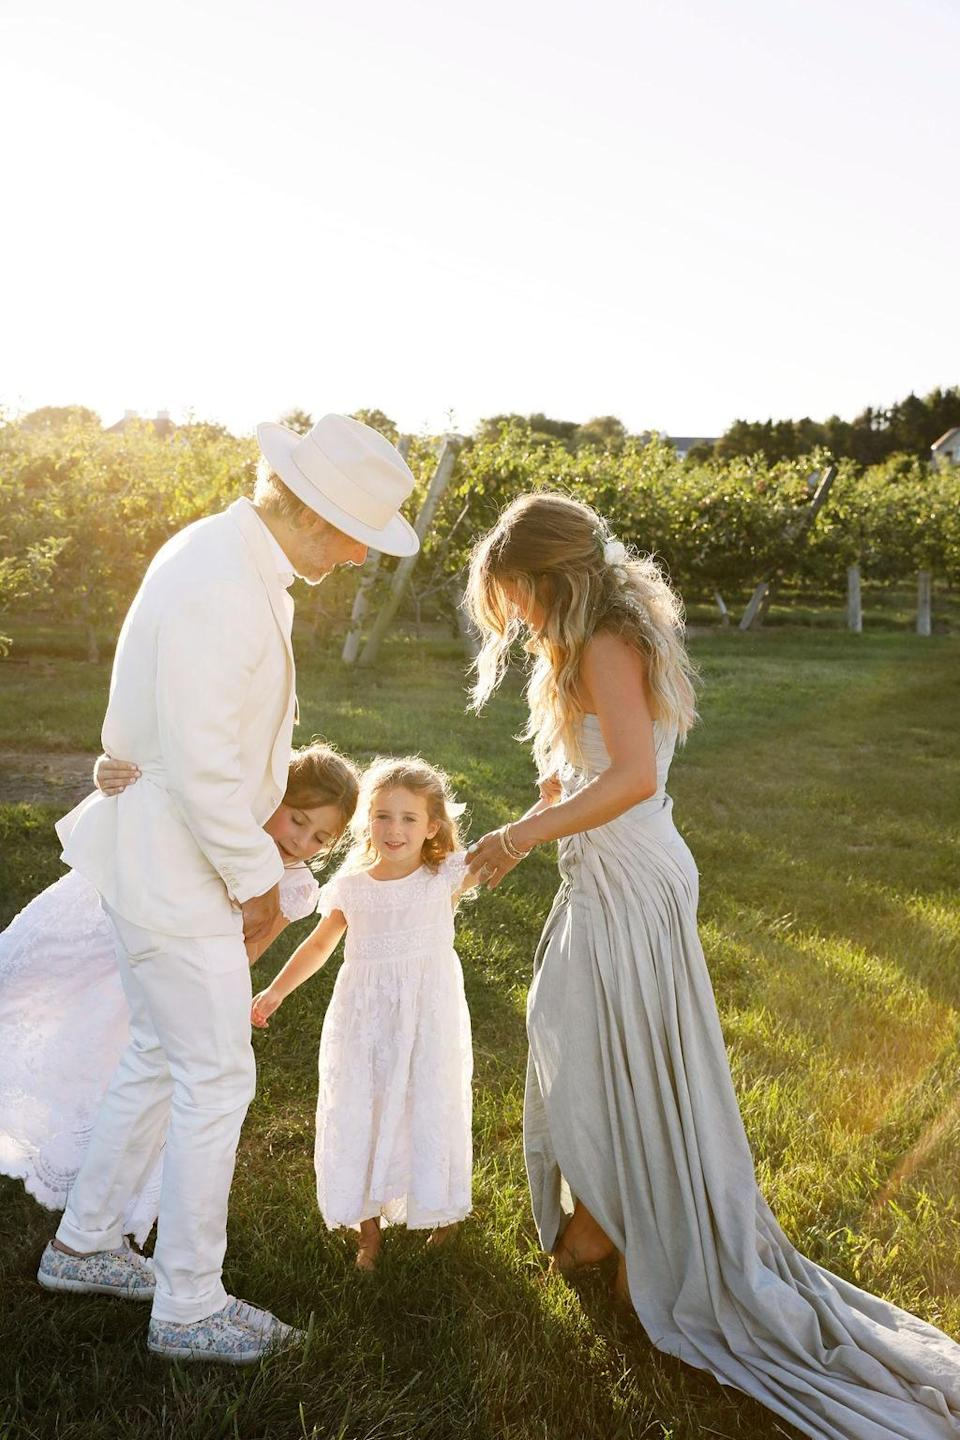 """""""Friends that are family,"""" Dean notes. """"Todd Cohen and his girls, Stella, Scarlett, and Rebecca Hessel Cohen dancing barefoot at the edge of the apple orchards."""""""